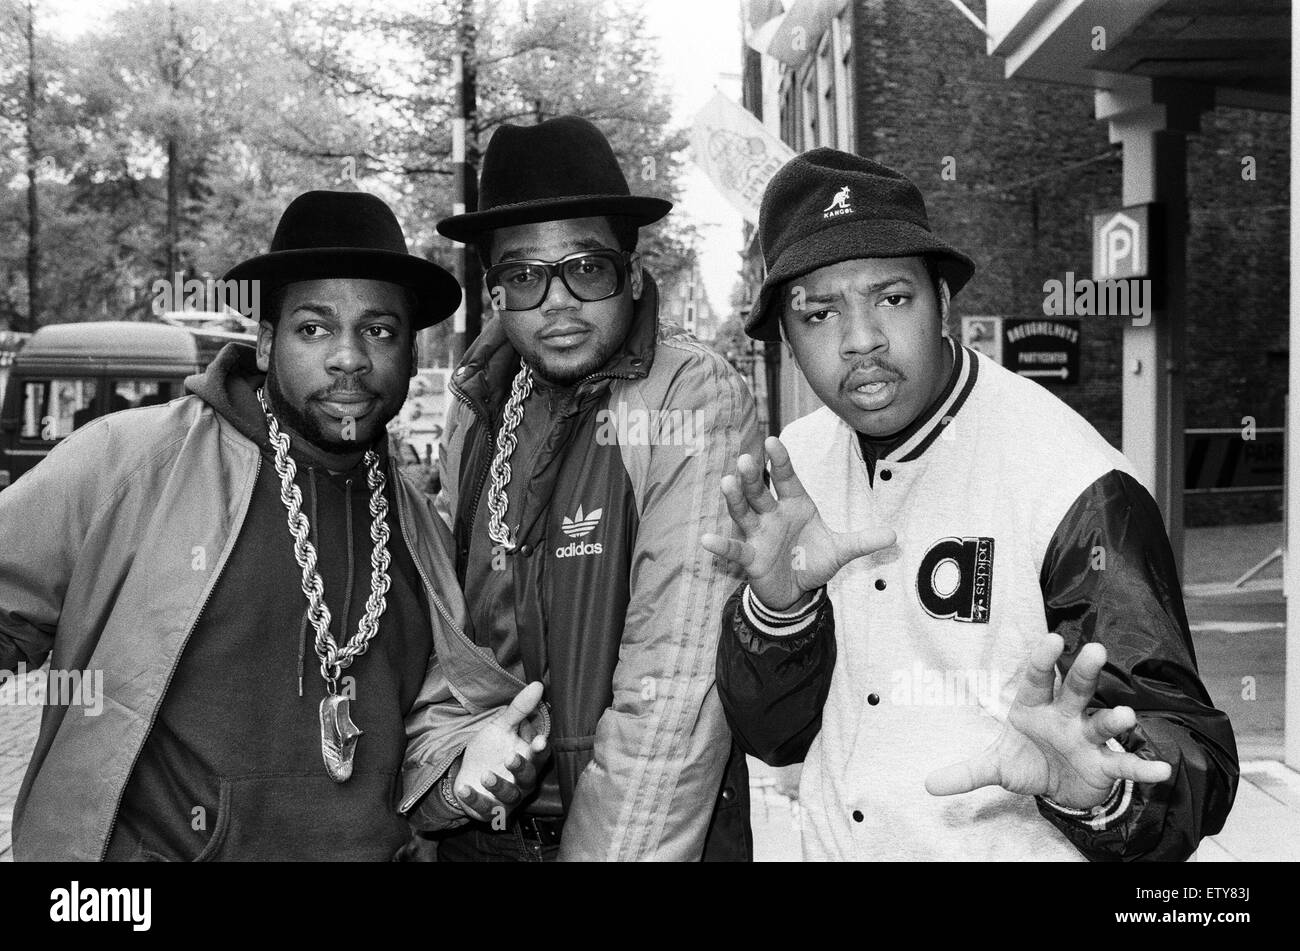 Run-DMC in Amsterdam. 22nd May 1987. - Stock Image